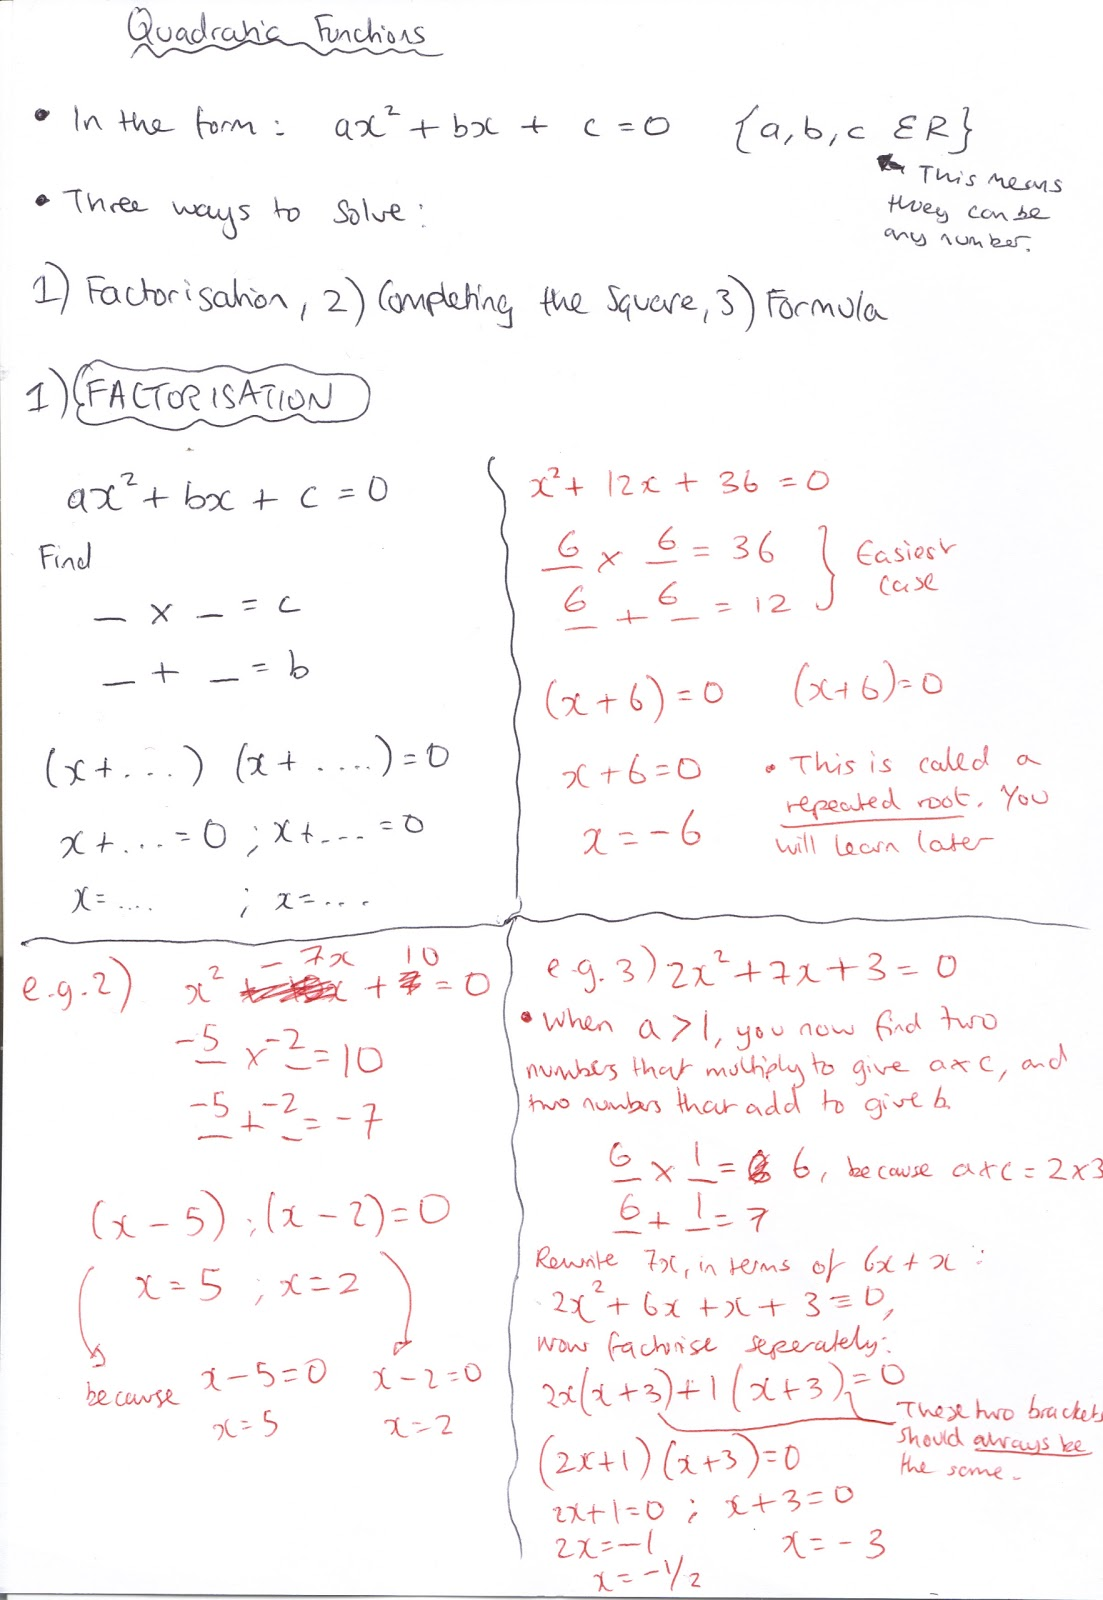 Completing The Square We Can Solve, Quadratic Equations Using Three  Methods : A) Factorisation, B)